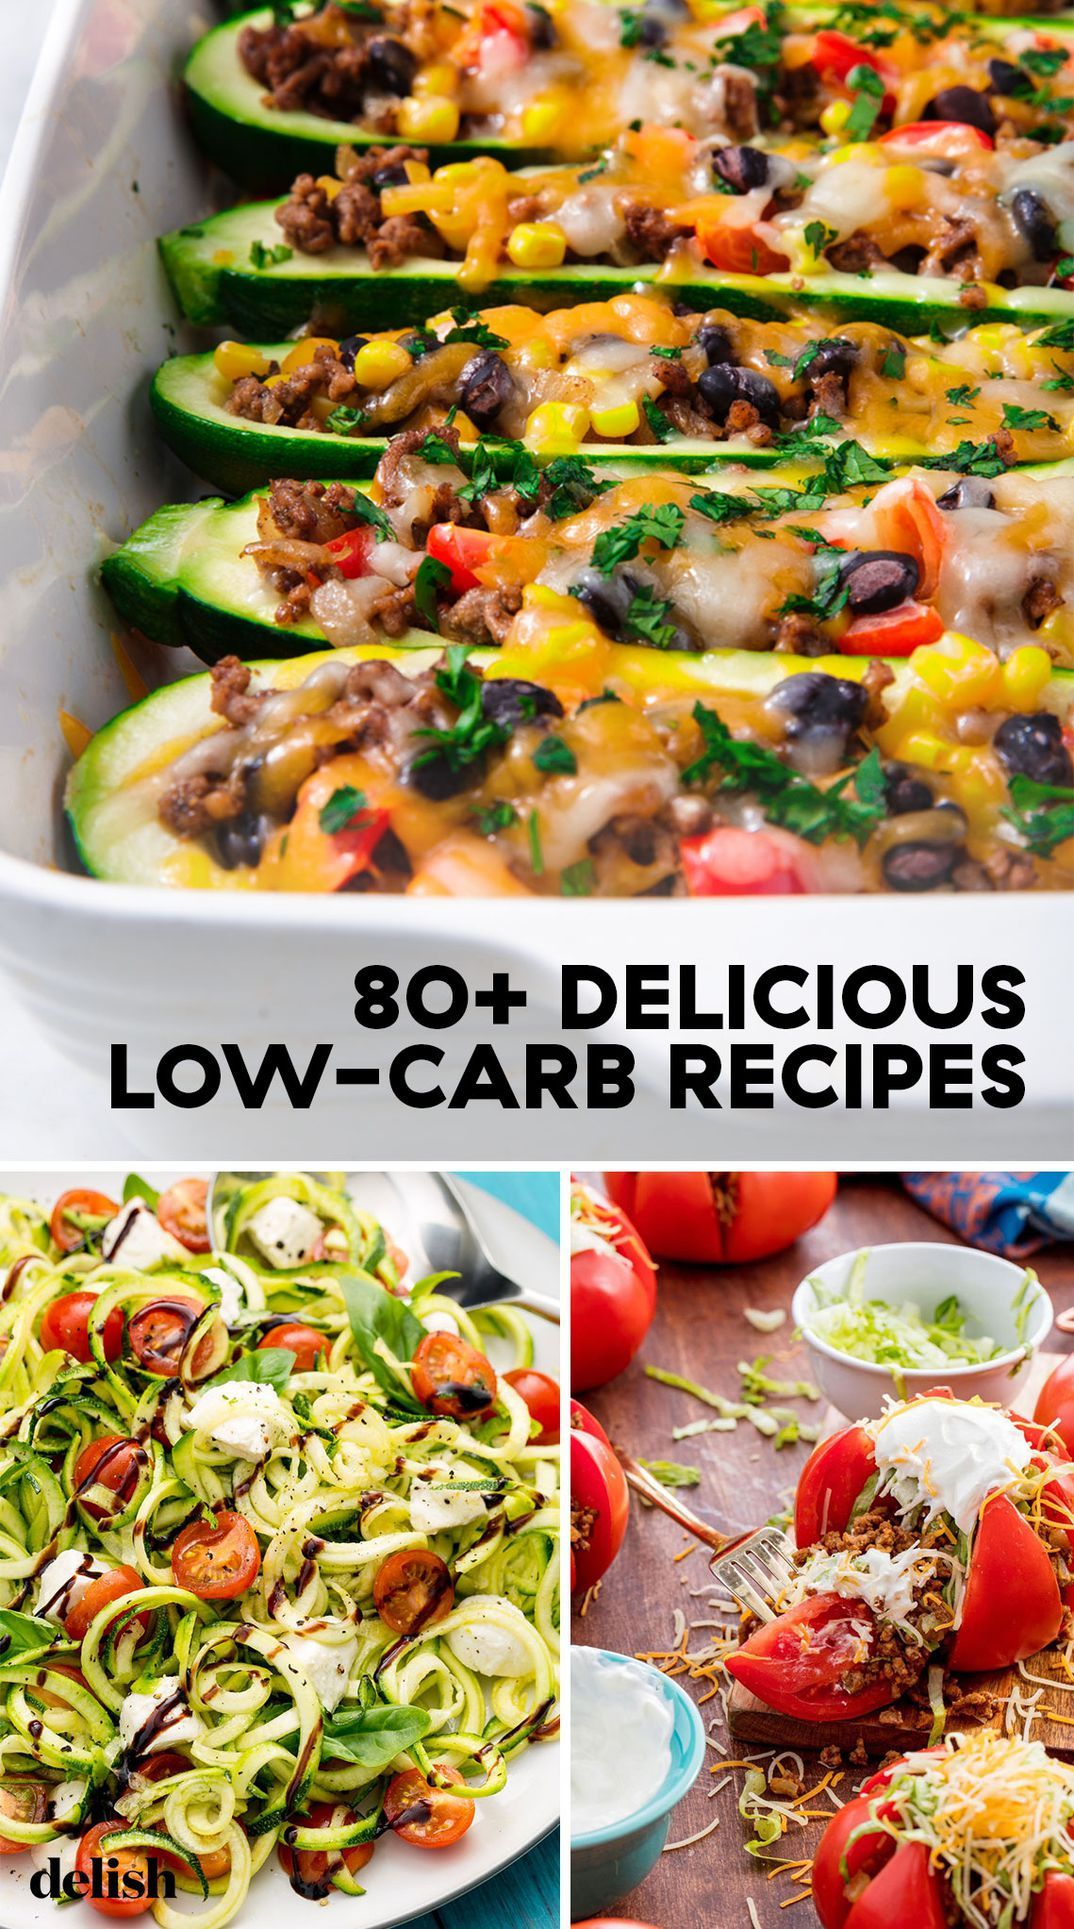 80+ Low-Carb Dishes That Will Make Your Diet A Breeze images